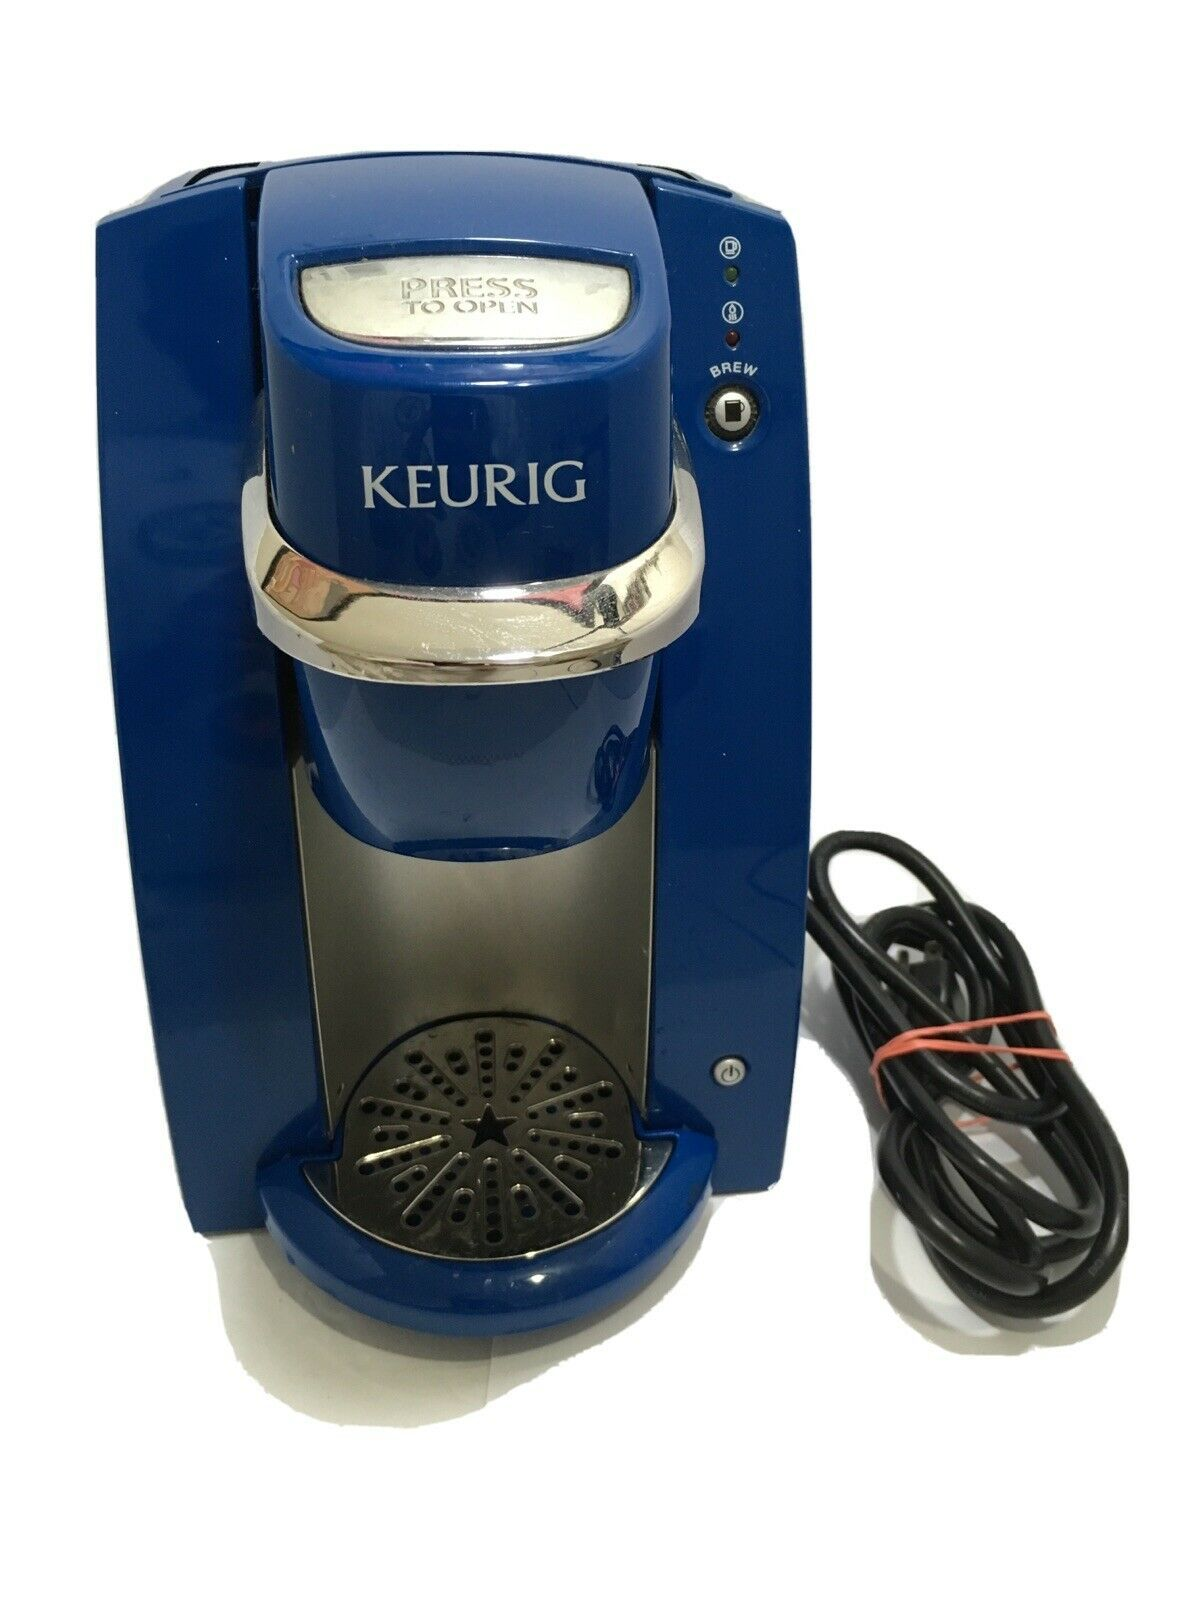 Keurig Single Cup Coffee Maker B30 Clean Fully Functional Ideas Of Keurig Coffee Maker Keurigcoffeemak In 2020 Single Coffee Maker Keurig Coffee Makers Keurig Mini